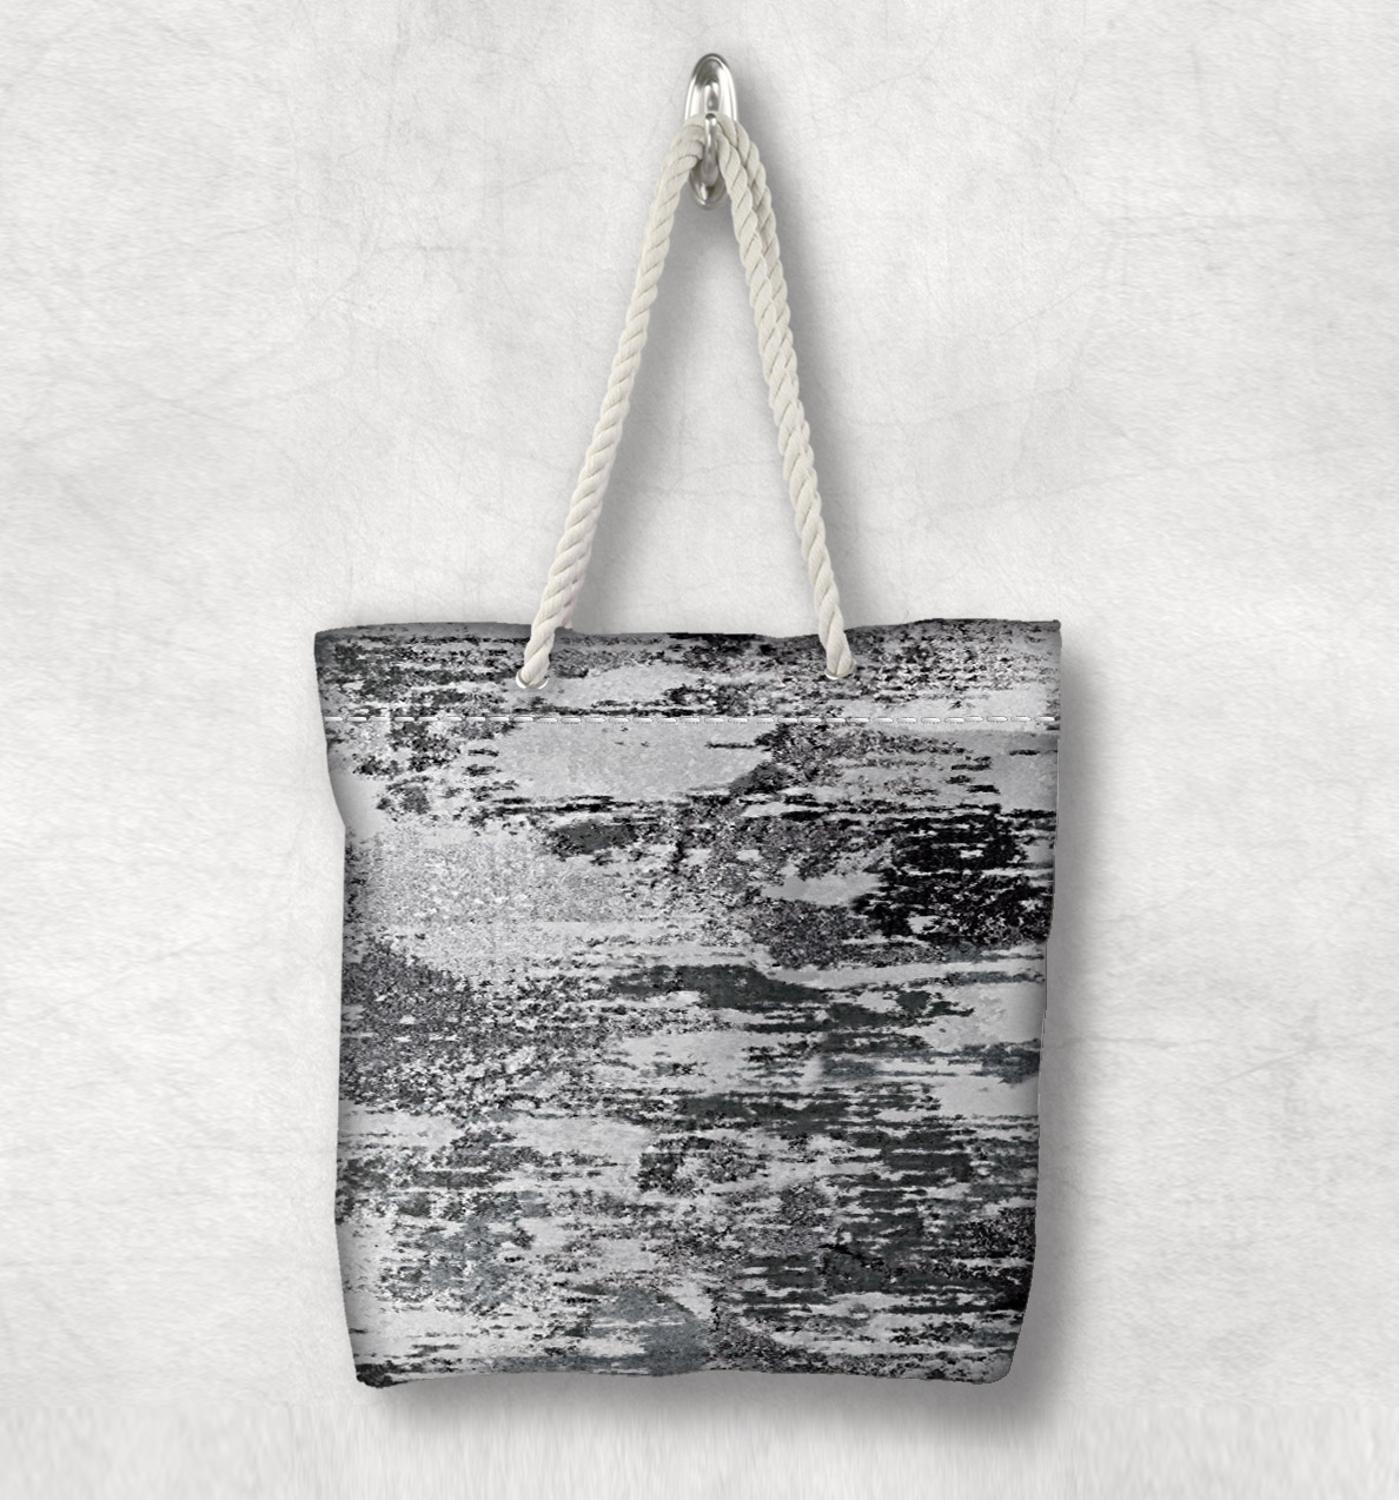 Else Black Gray Abstract Watercolor Paint  New Fashion White Rope Handle Canvas Bag Cotton Canvas Zippered Tote Bag Shoulder Bag